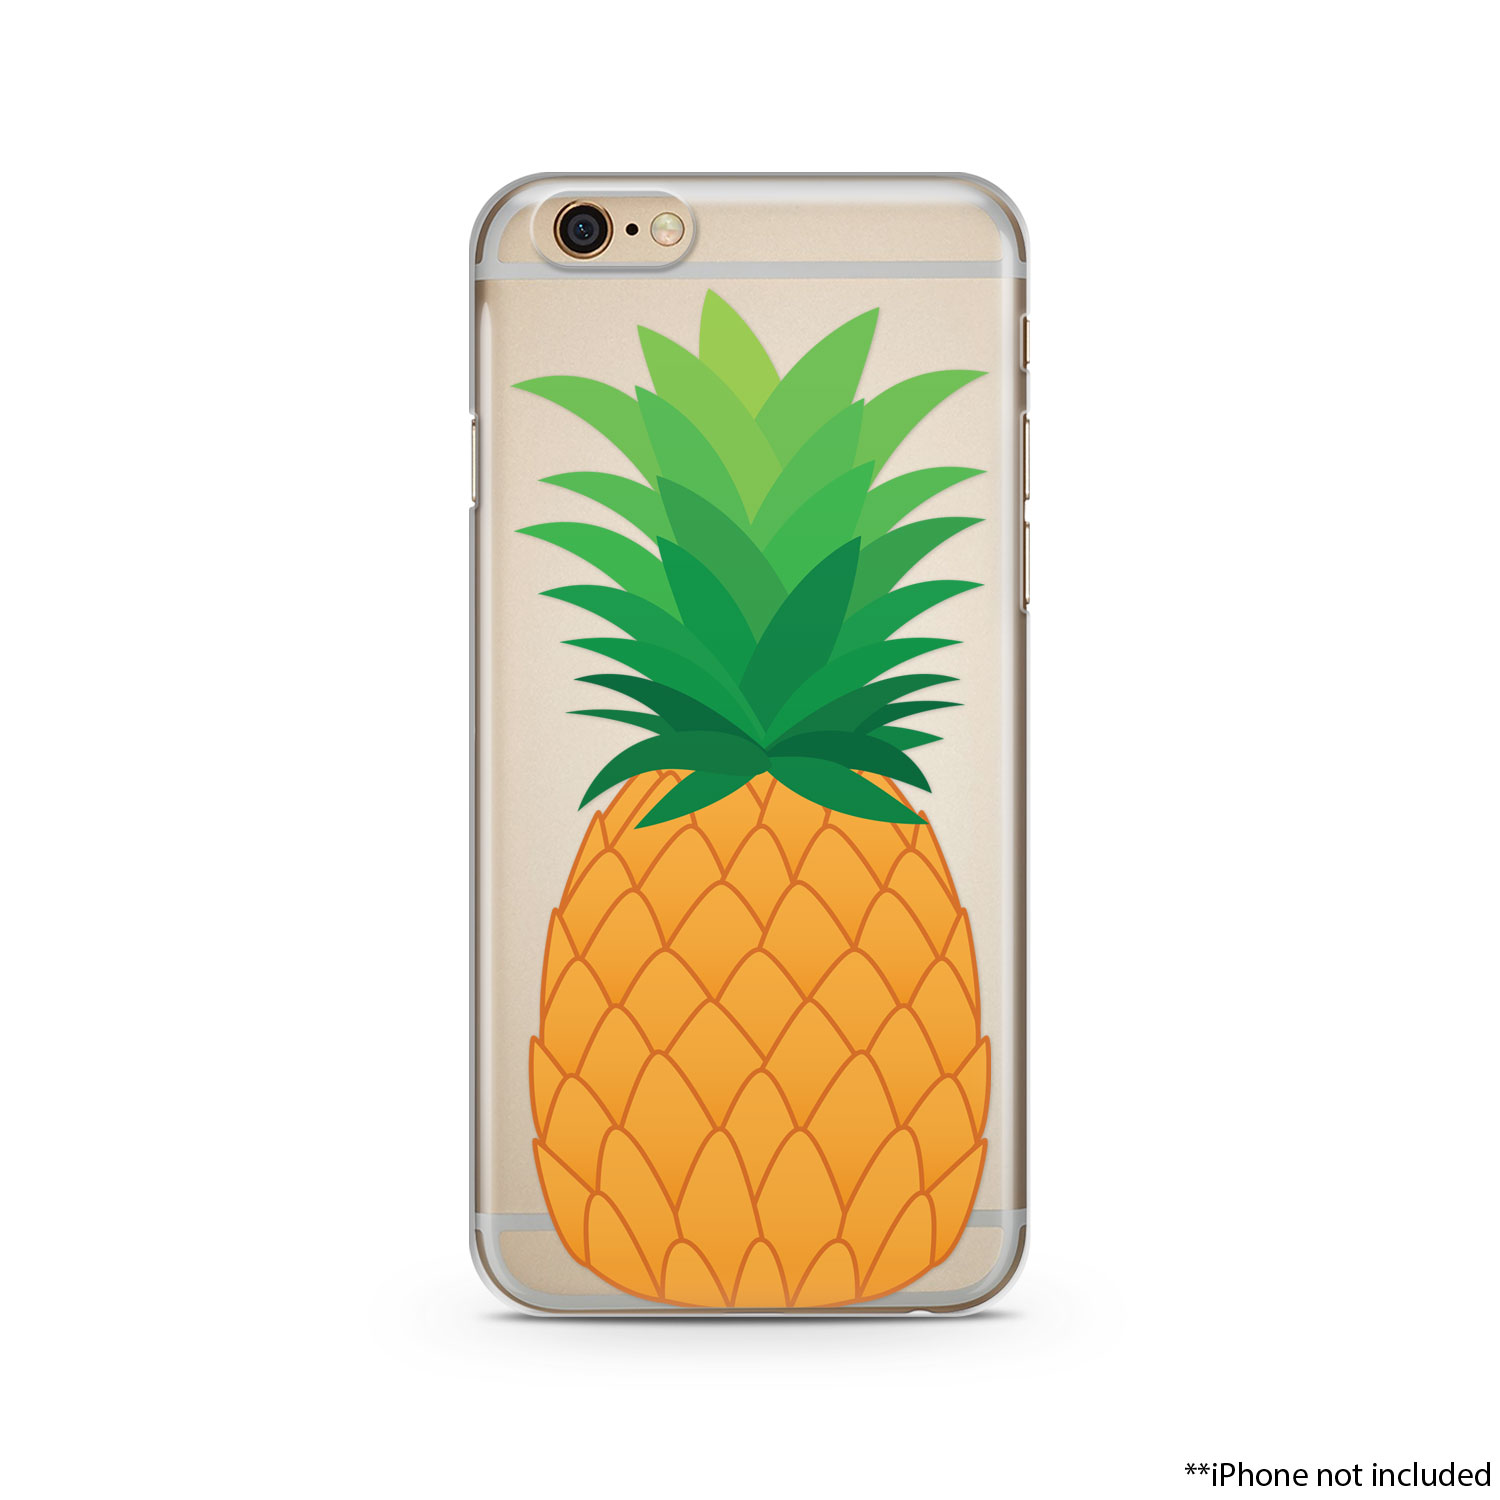 056a7578a9 Big Pineapple iPhone Case, iPhone 6 plus case Transparent iPhone Case, iphone  6s case, iphone 6 case, iPhone 6s plus case on Storenvy